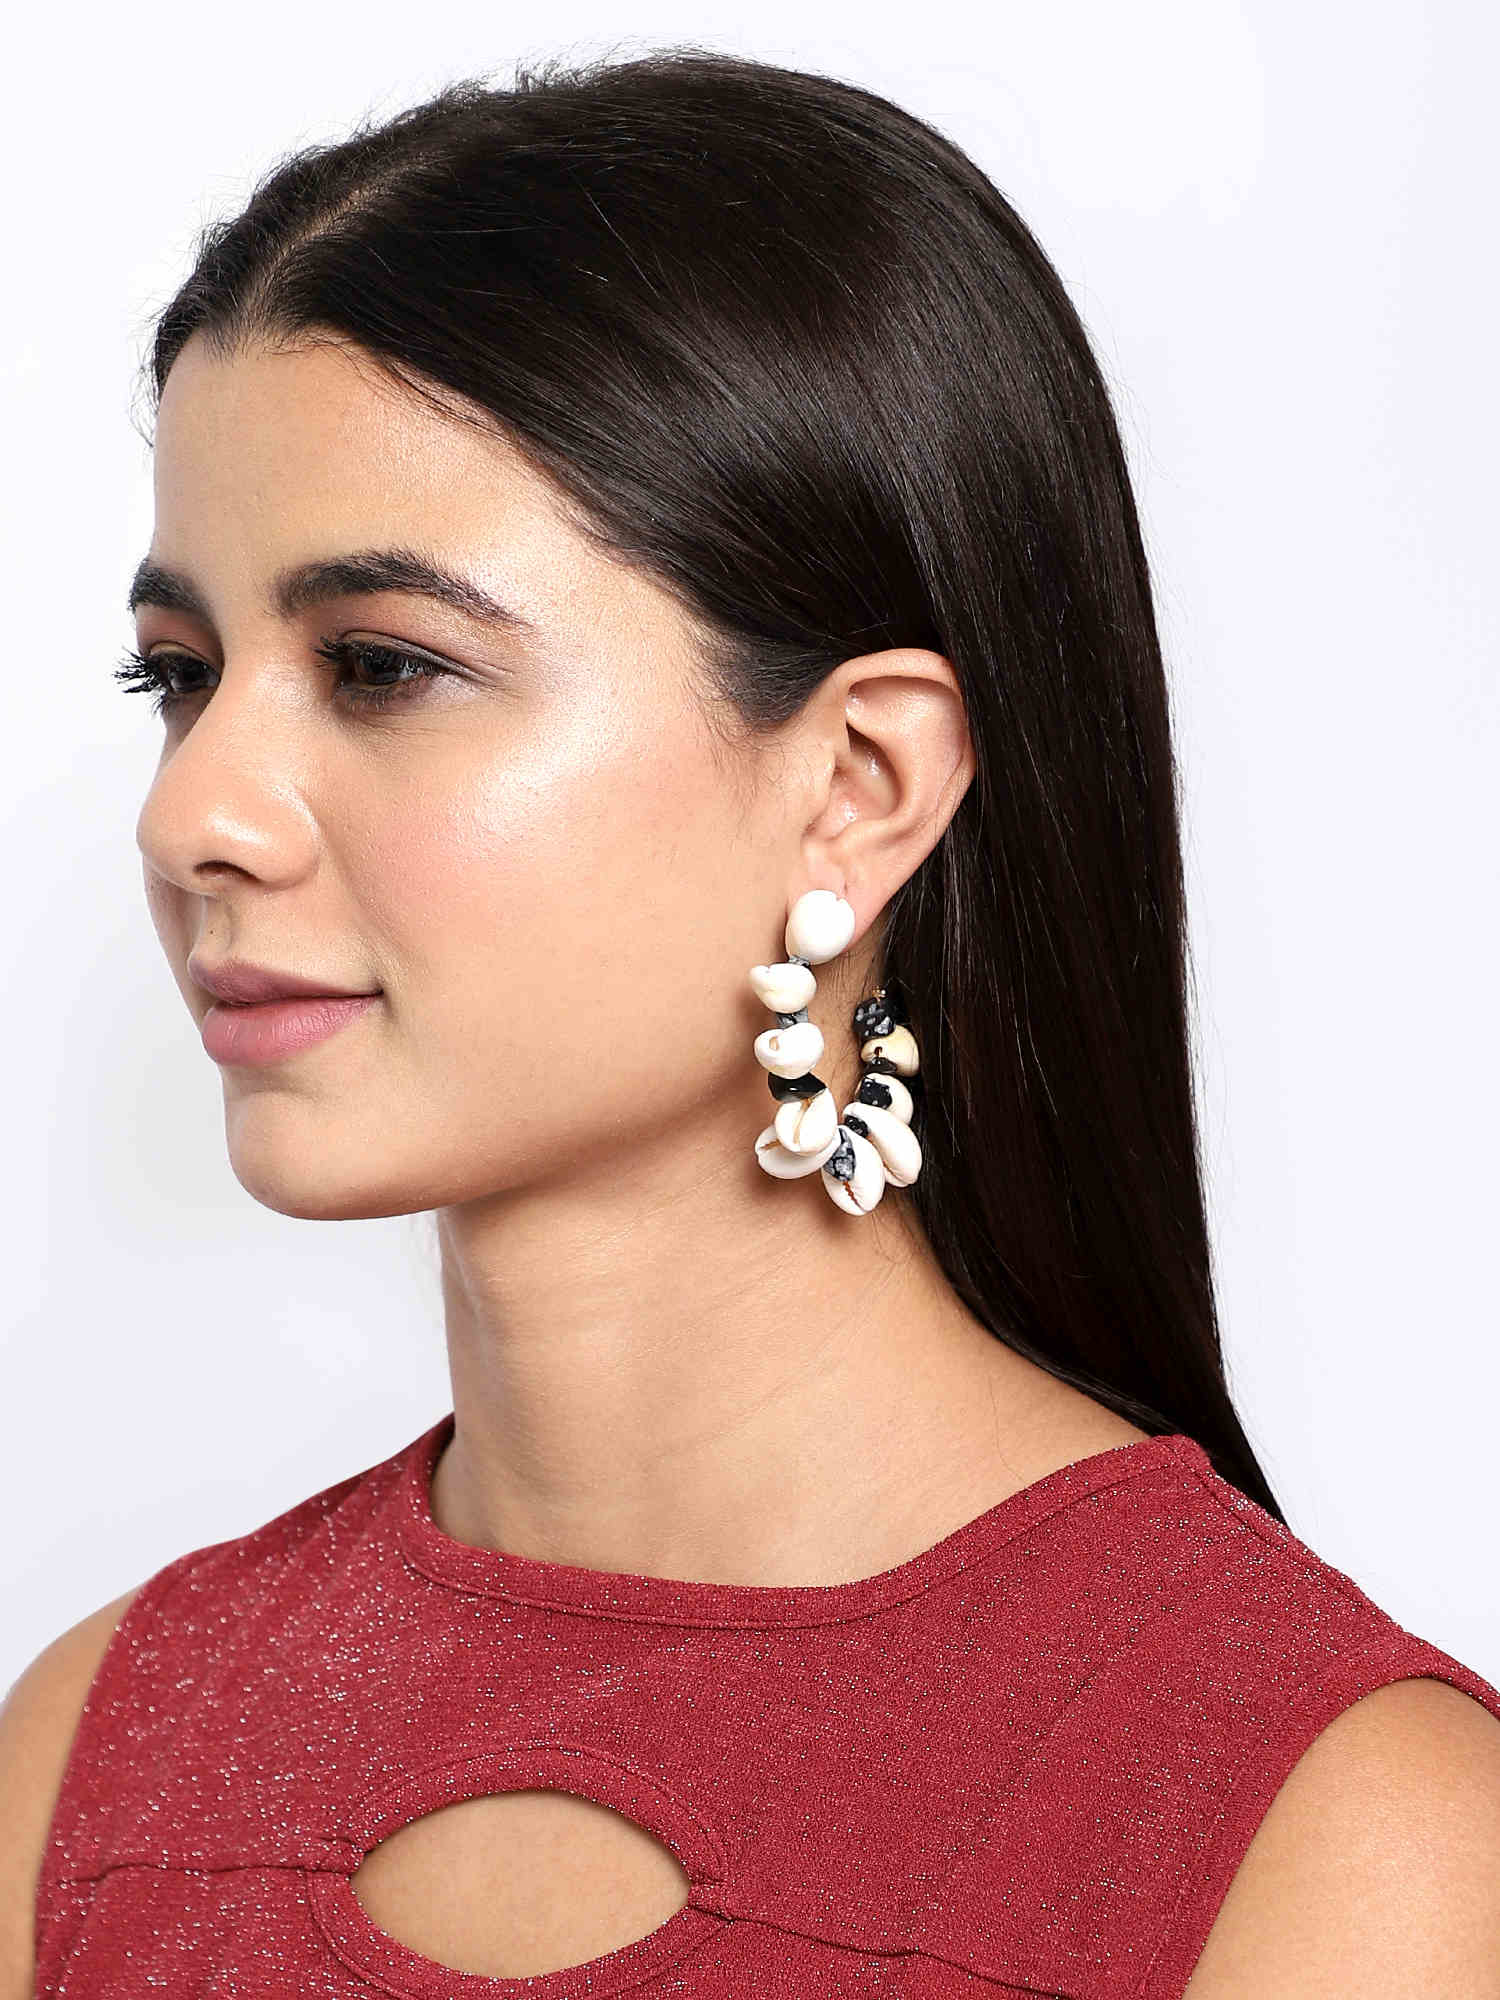 Bellofox Half Shells Earrings Earrings